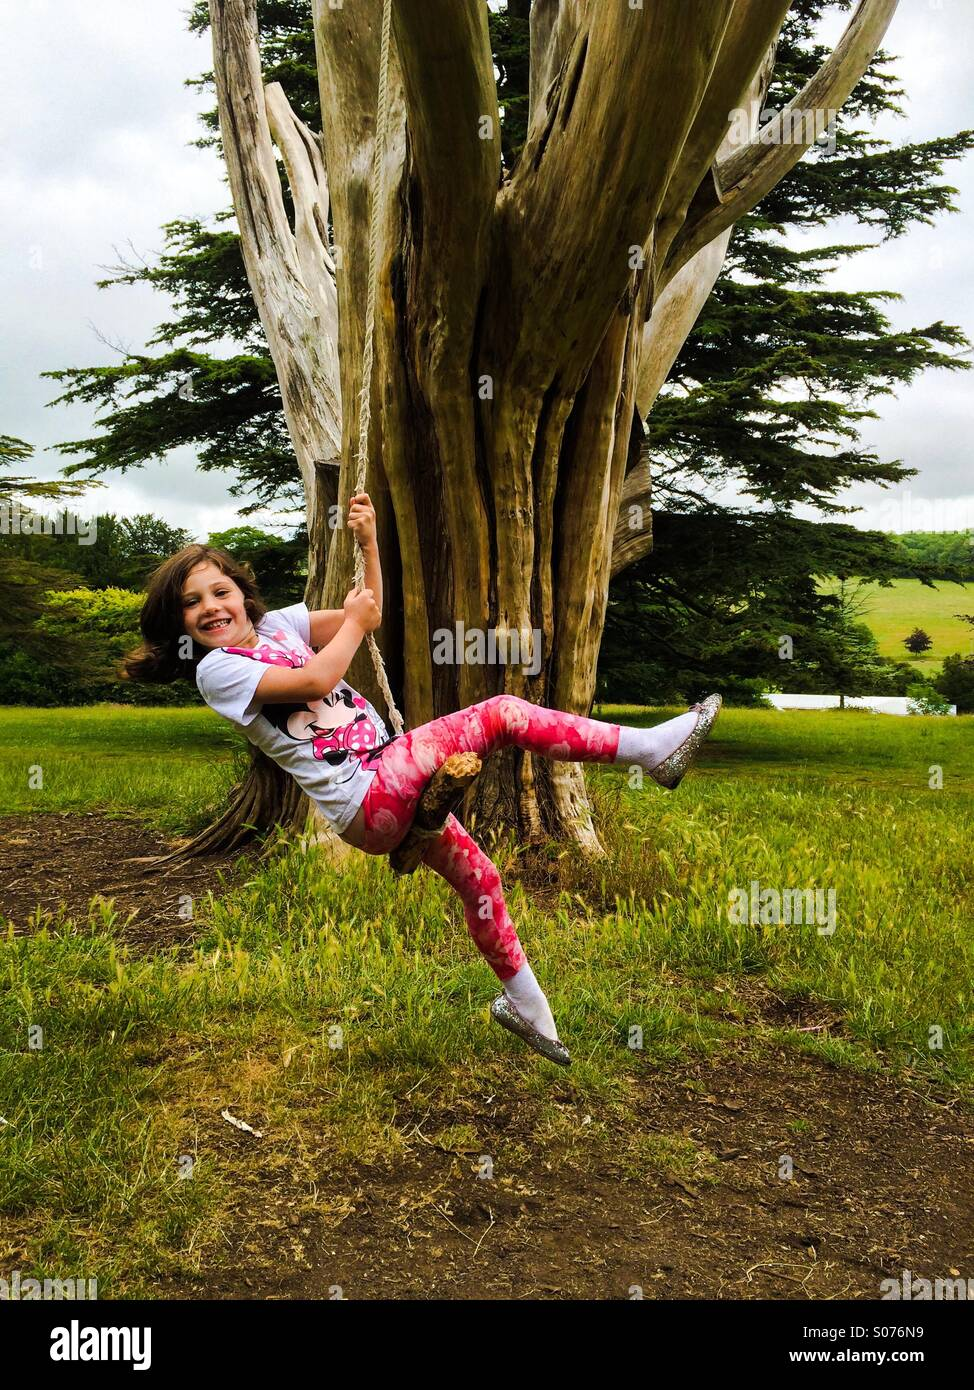 Five year old girl on tree swing - Stock Image